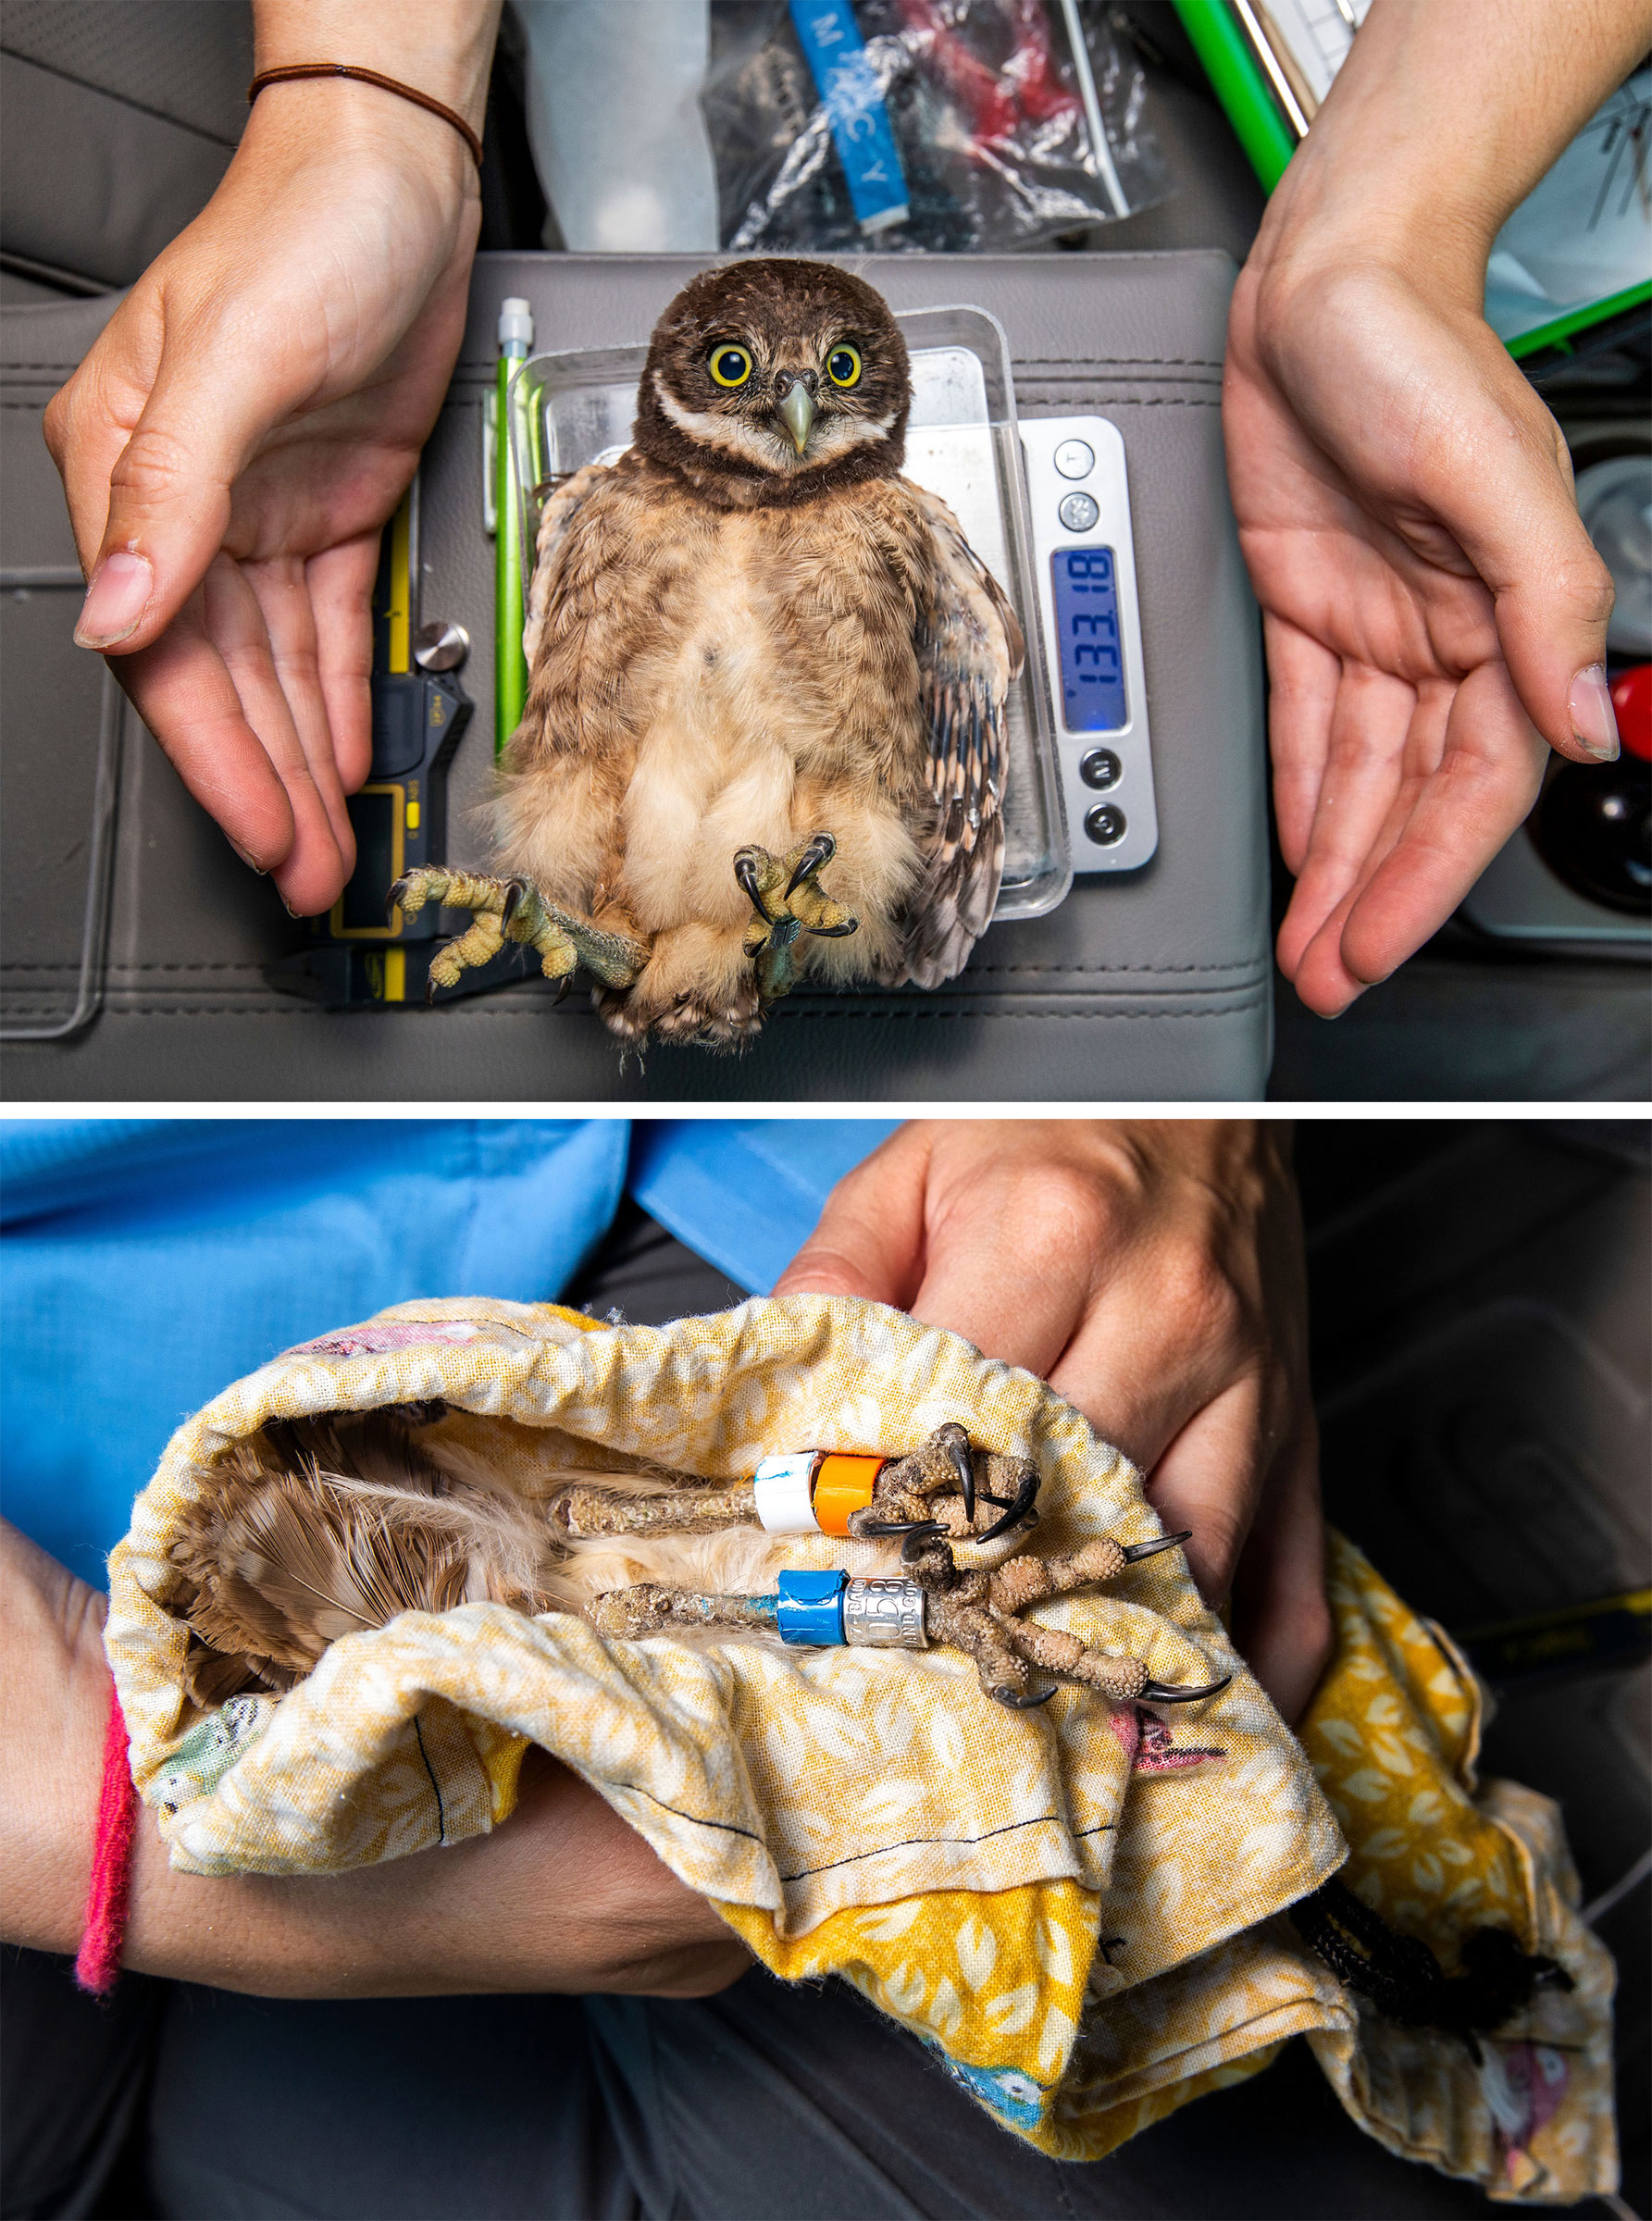 Smith weighs and bands a Burrowing Owl chick in the back of her car. Photos: Karine Aigner